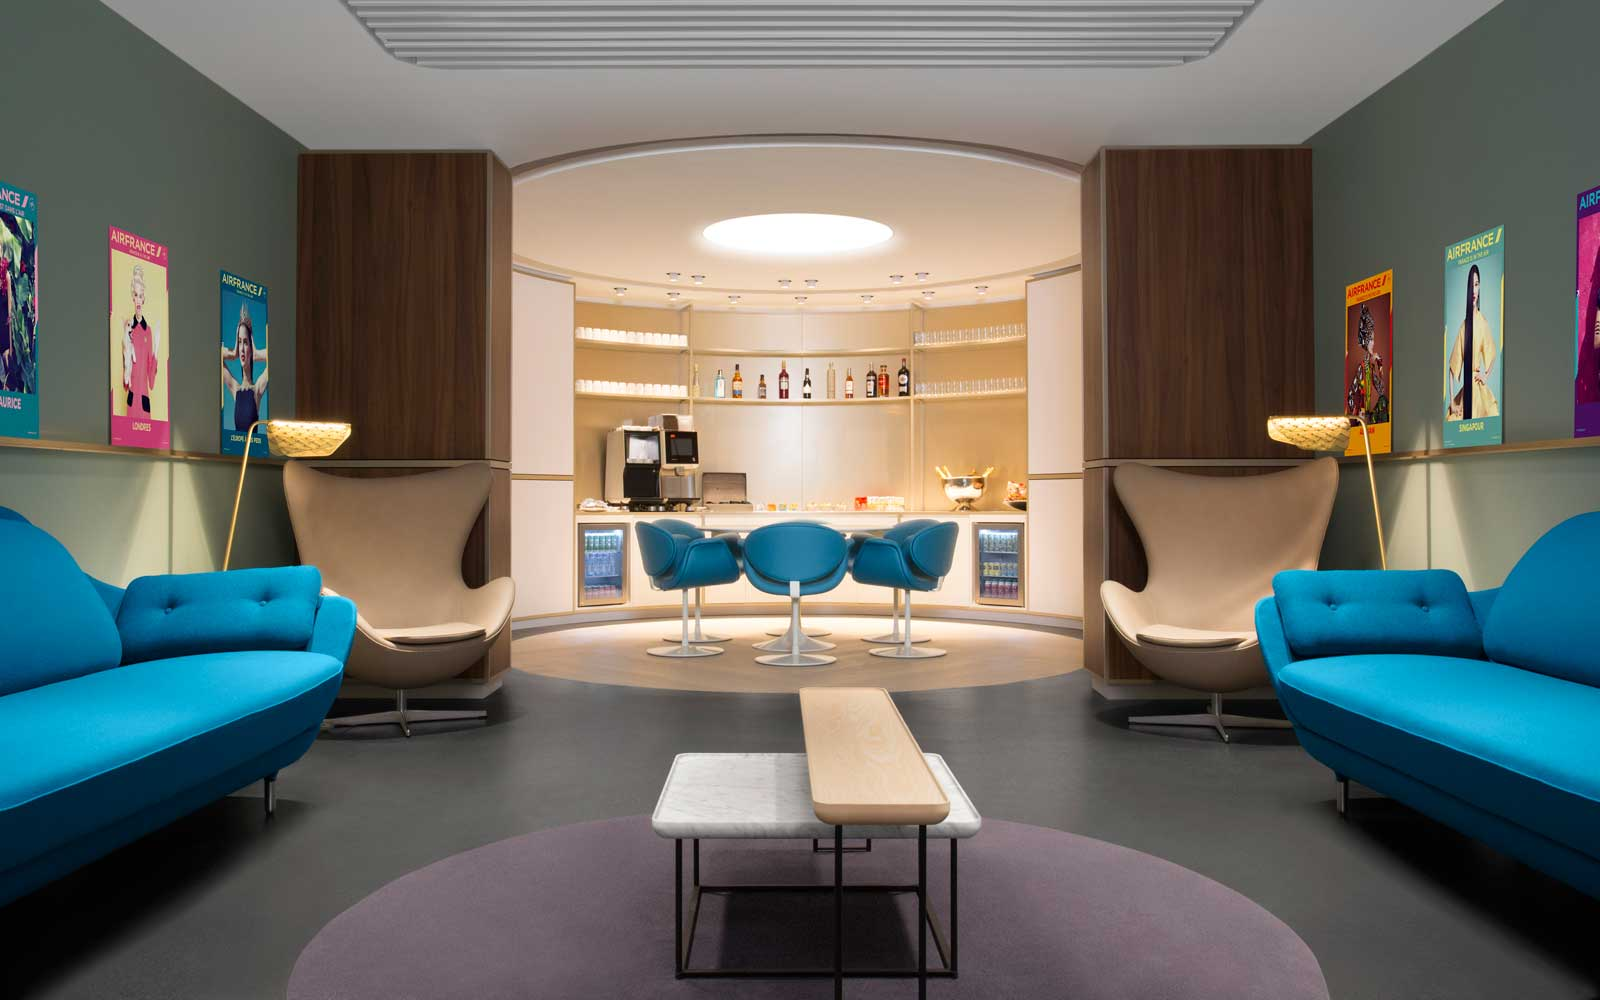 New Air France Lounge Spaces